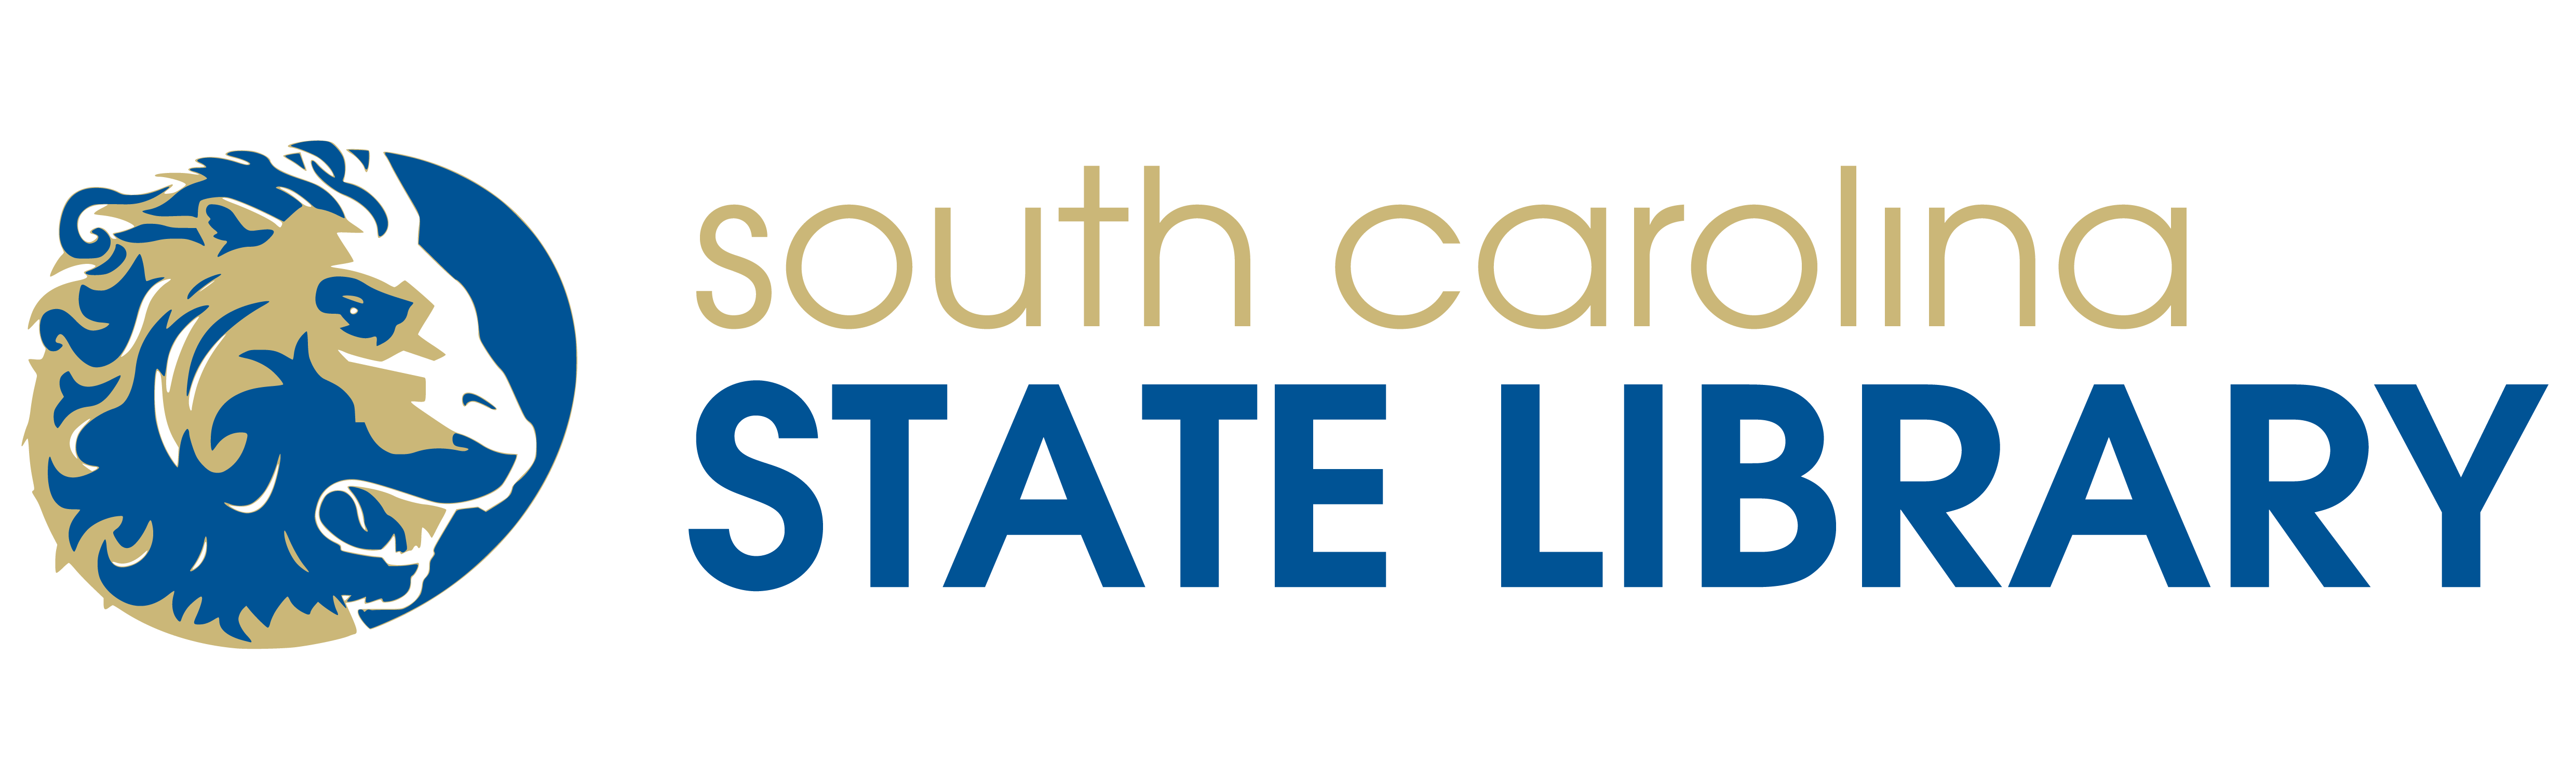 South Carolina State Library logo